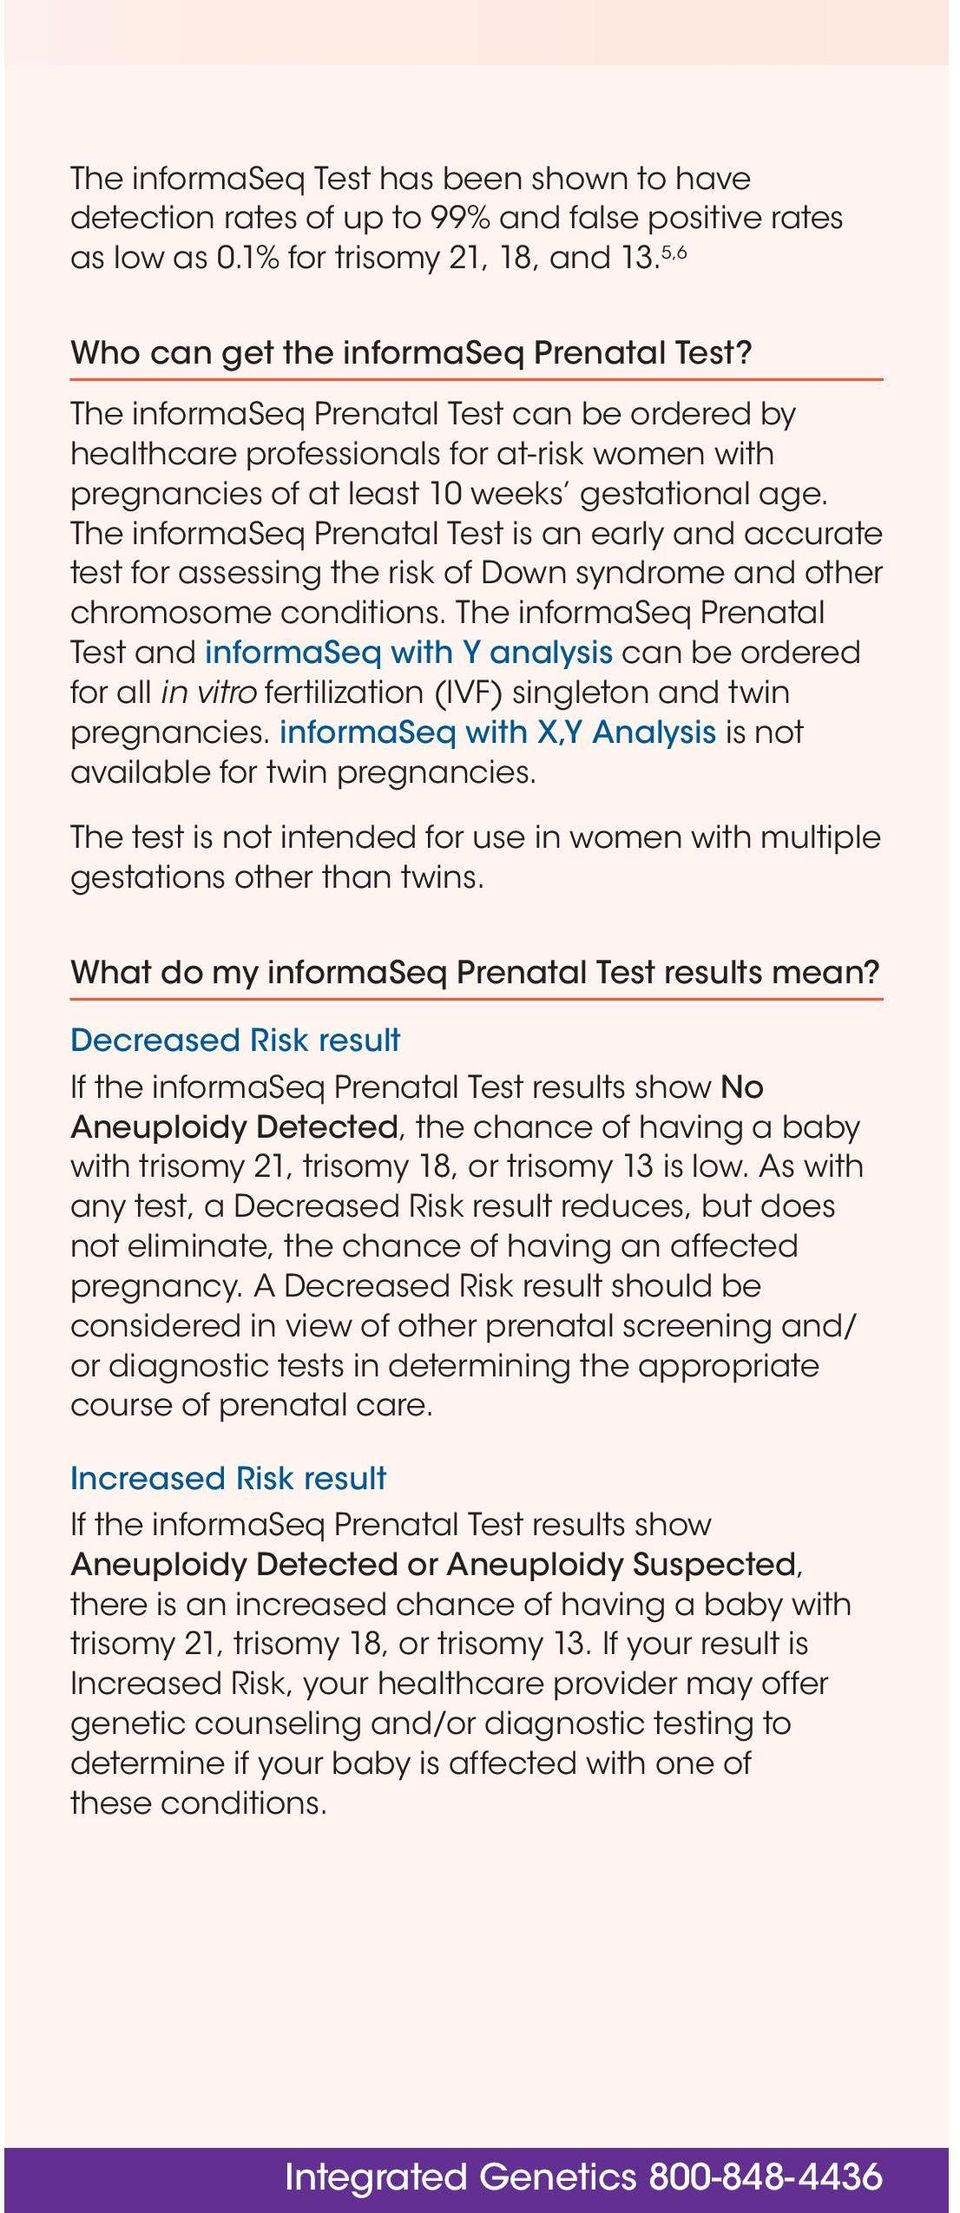 The informaseq Prenatal Test is an early and accurate test for assessing the risk of Down syndrome and other chromosome conditions.